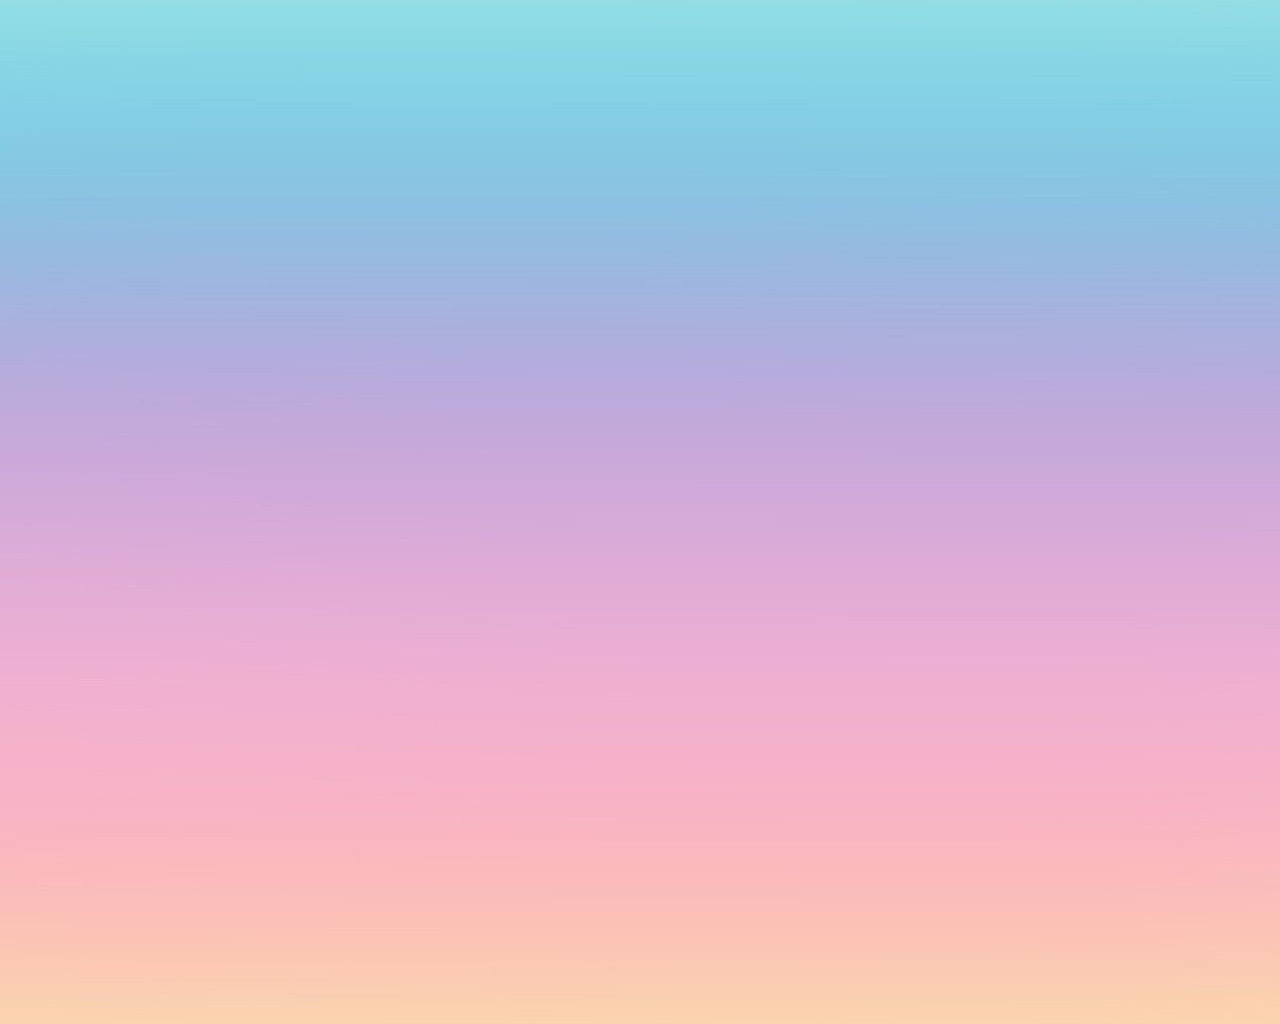 Free Download Pastel Aesthetic Wallpapers Top Pastel Aesthetic